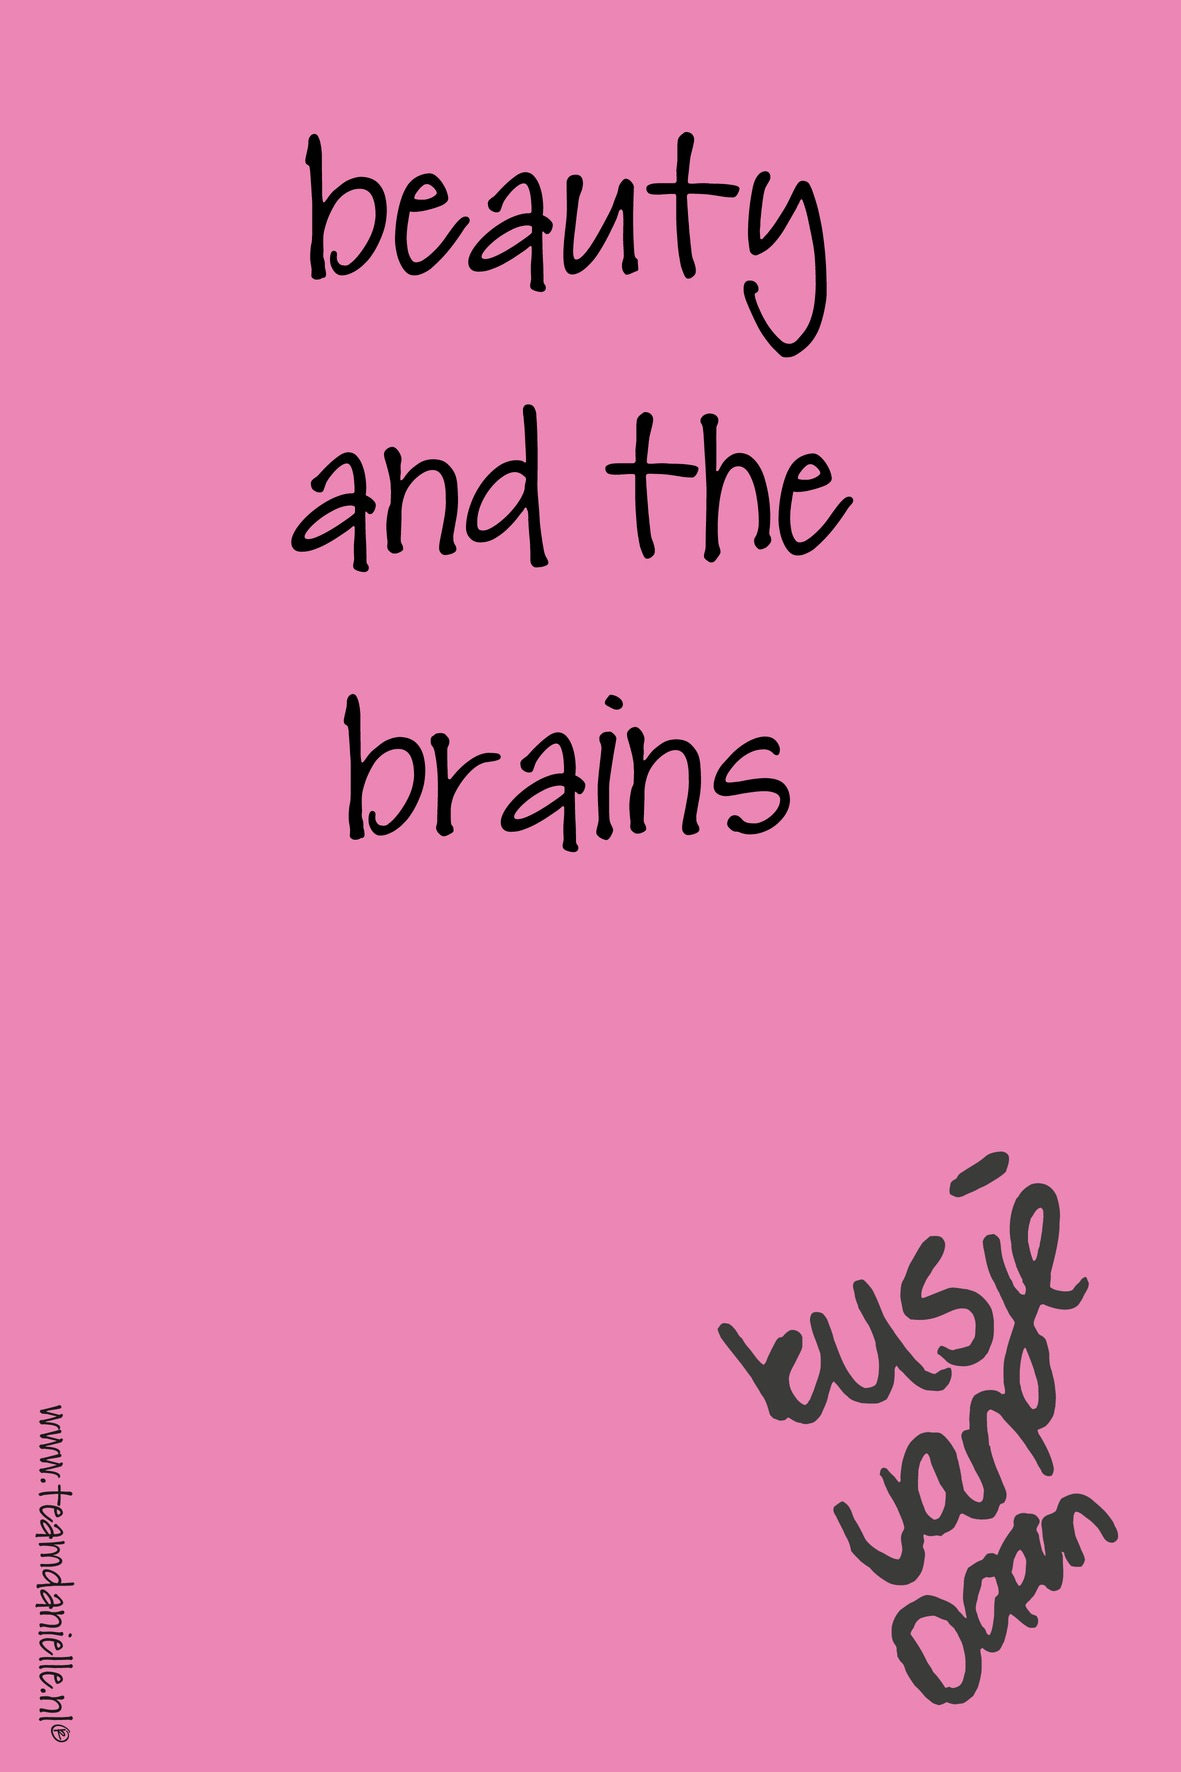 Kusje-180425-beauty and the brains